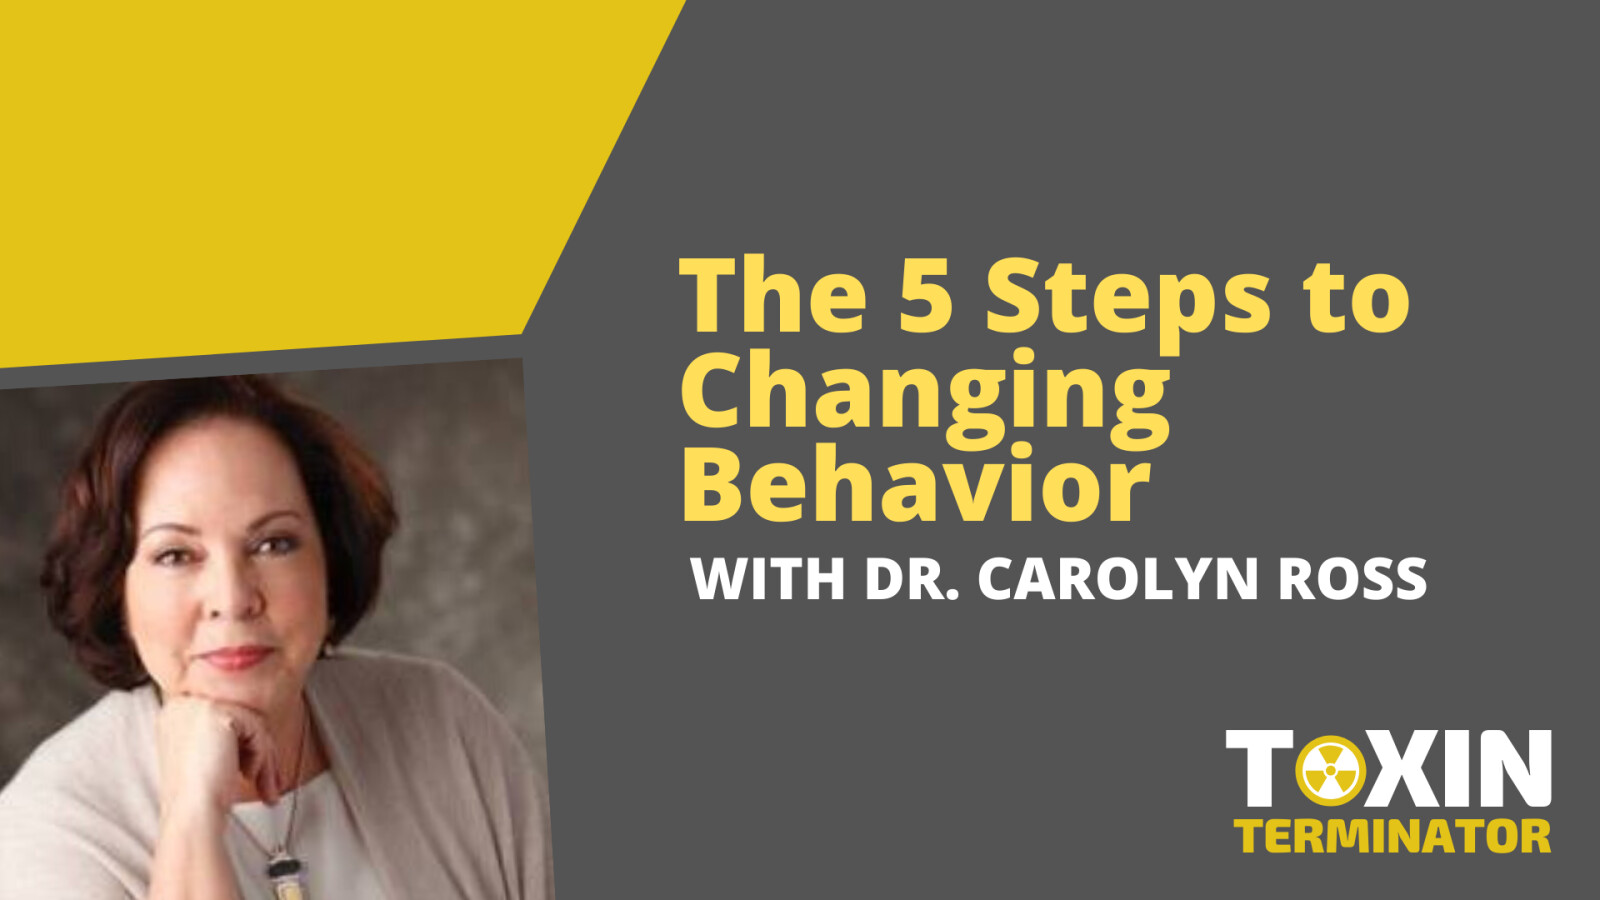 The 5 Steps to Changing Behavior with Dr. Carolyn Ross